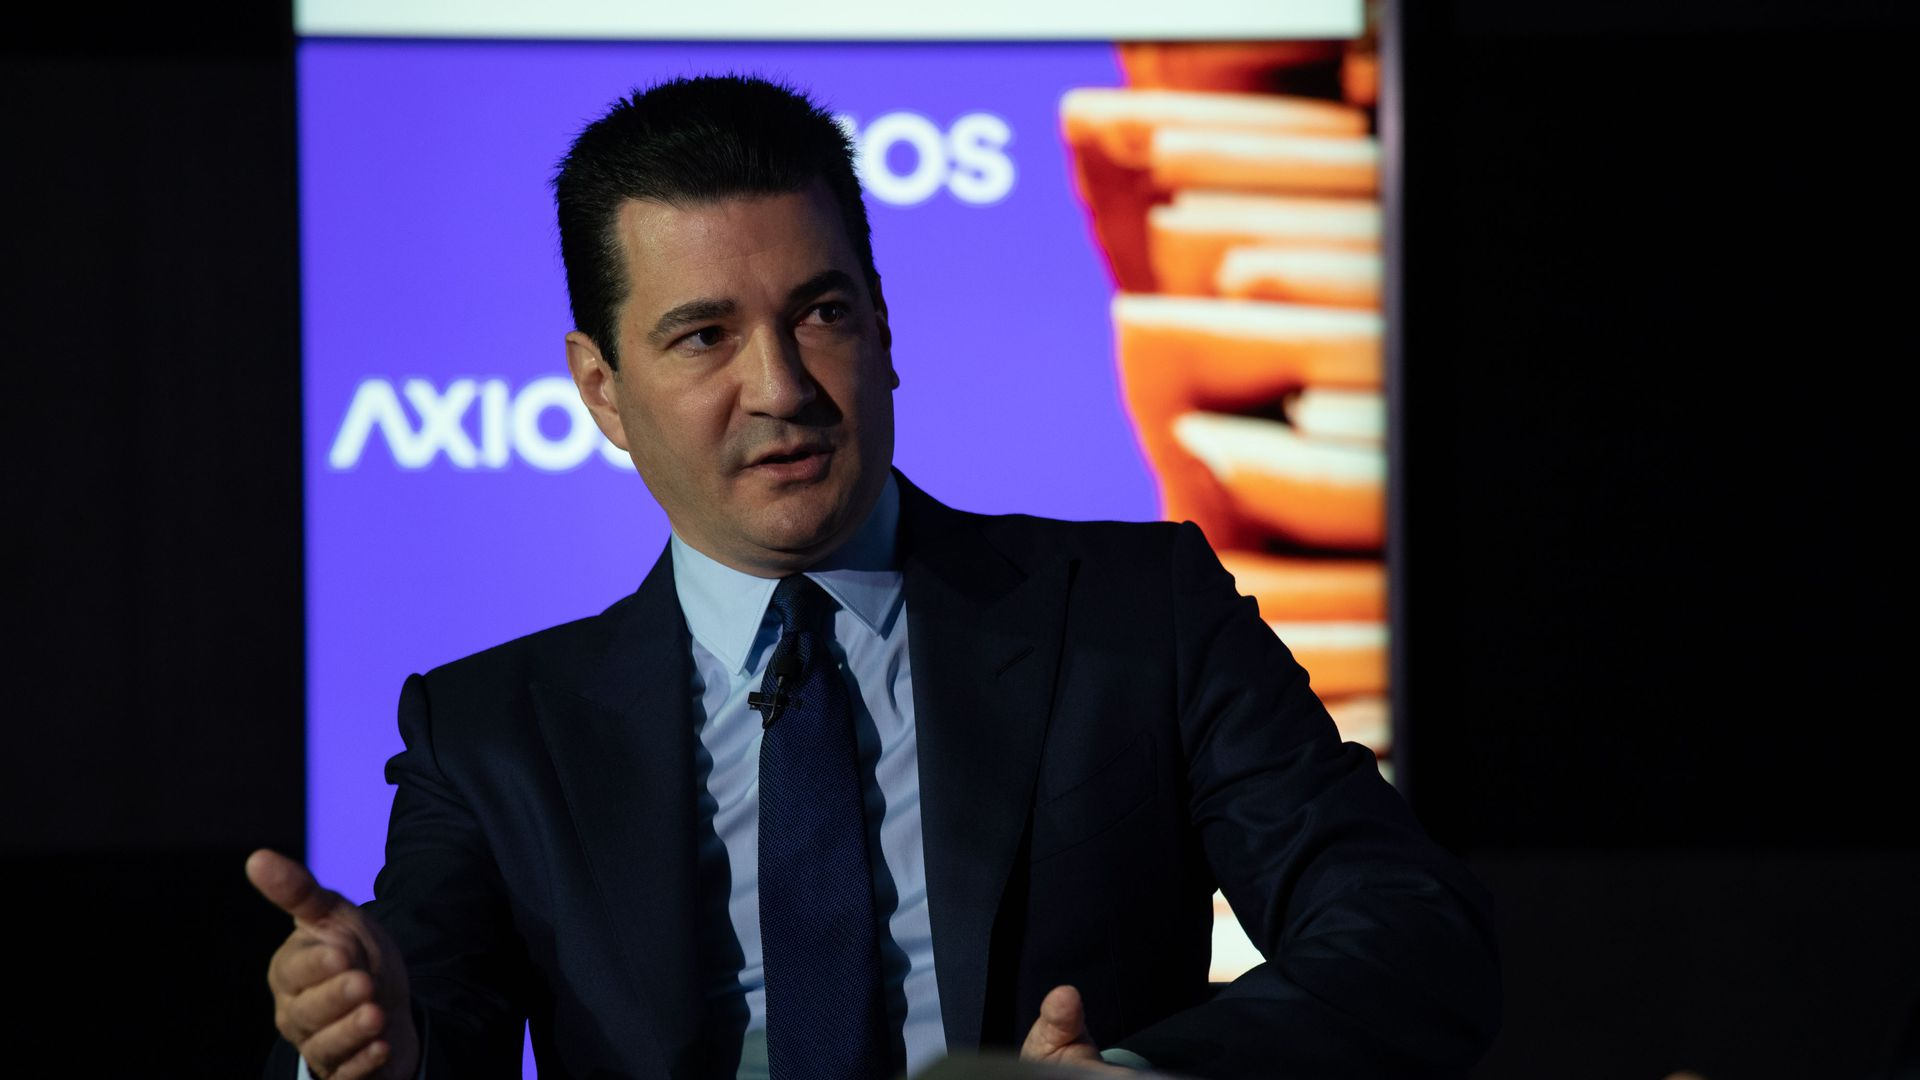 FDA Commissioner Scott Gottlieb speaks at an Axios event on vaping